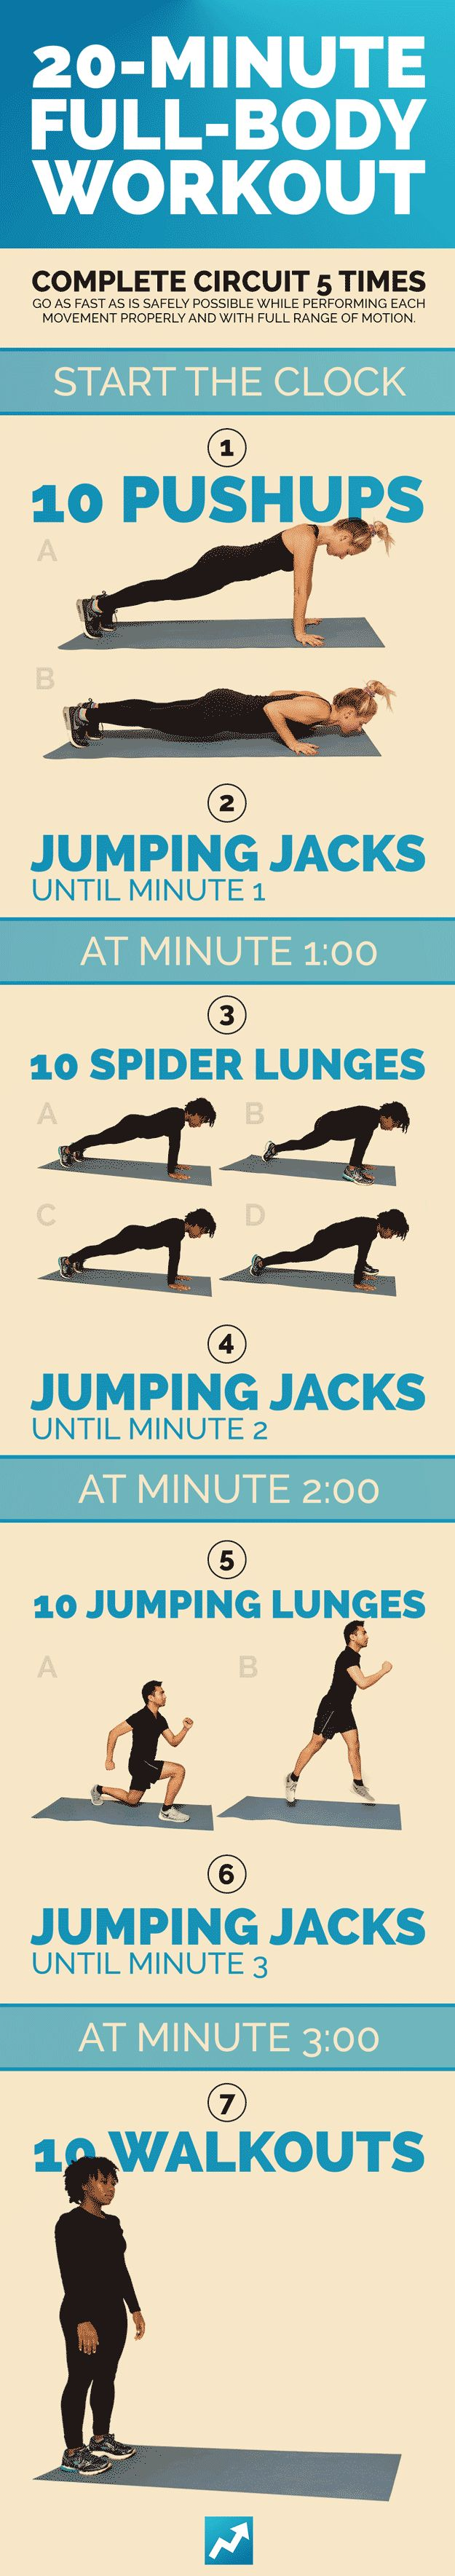 Total-Body Workout: 20 minutes, like if this looks easy, cuz I bet it is t as easy as it looks. Fit fo free